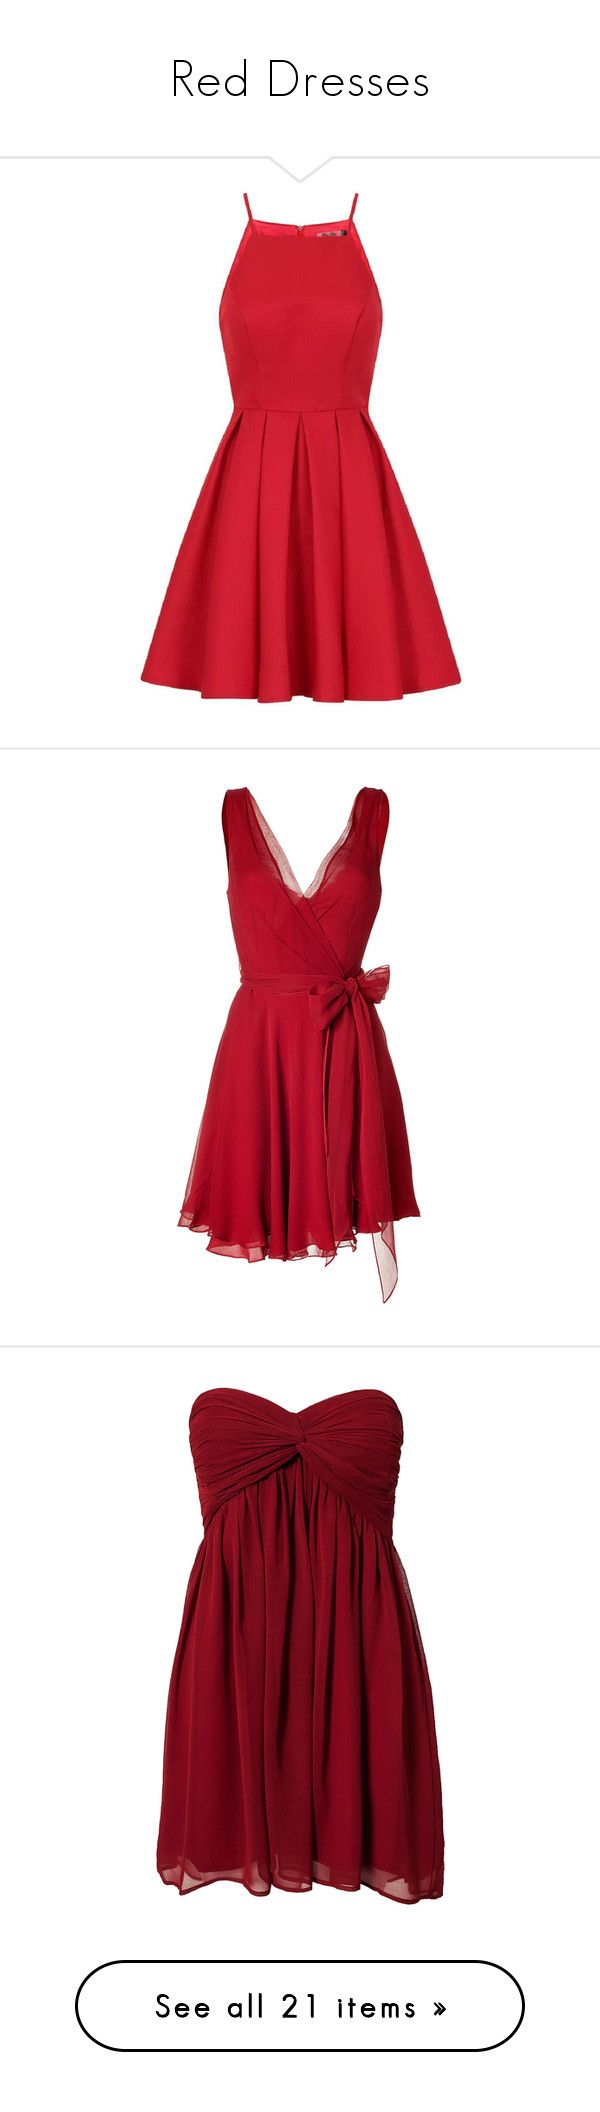 """Red Dresses"" by whims-and-craze ❤ liked on Polyvore featuring dresses, vestidos, red, petite, red dress, petite red dress, chi chi dresses, fit and flare dress, petite fit and flare dresses and short dresses"